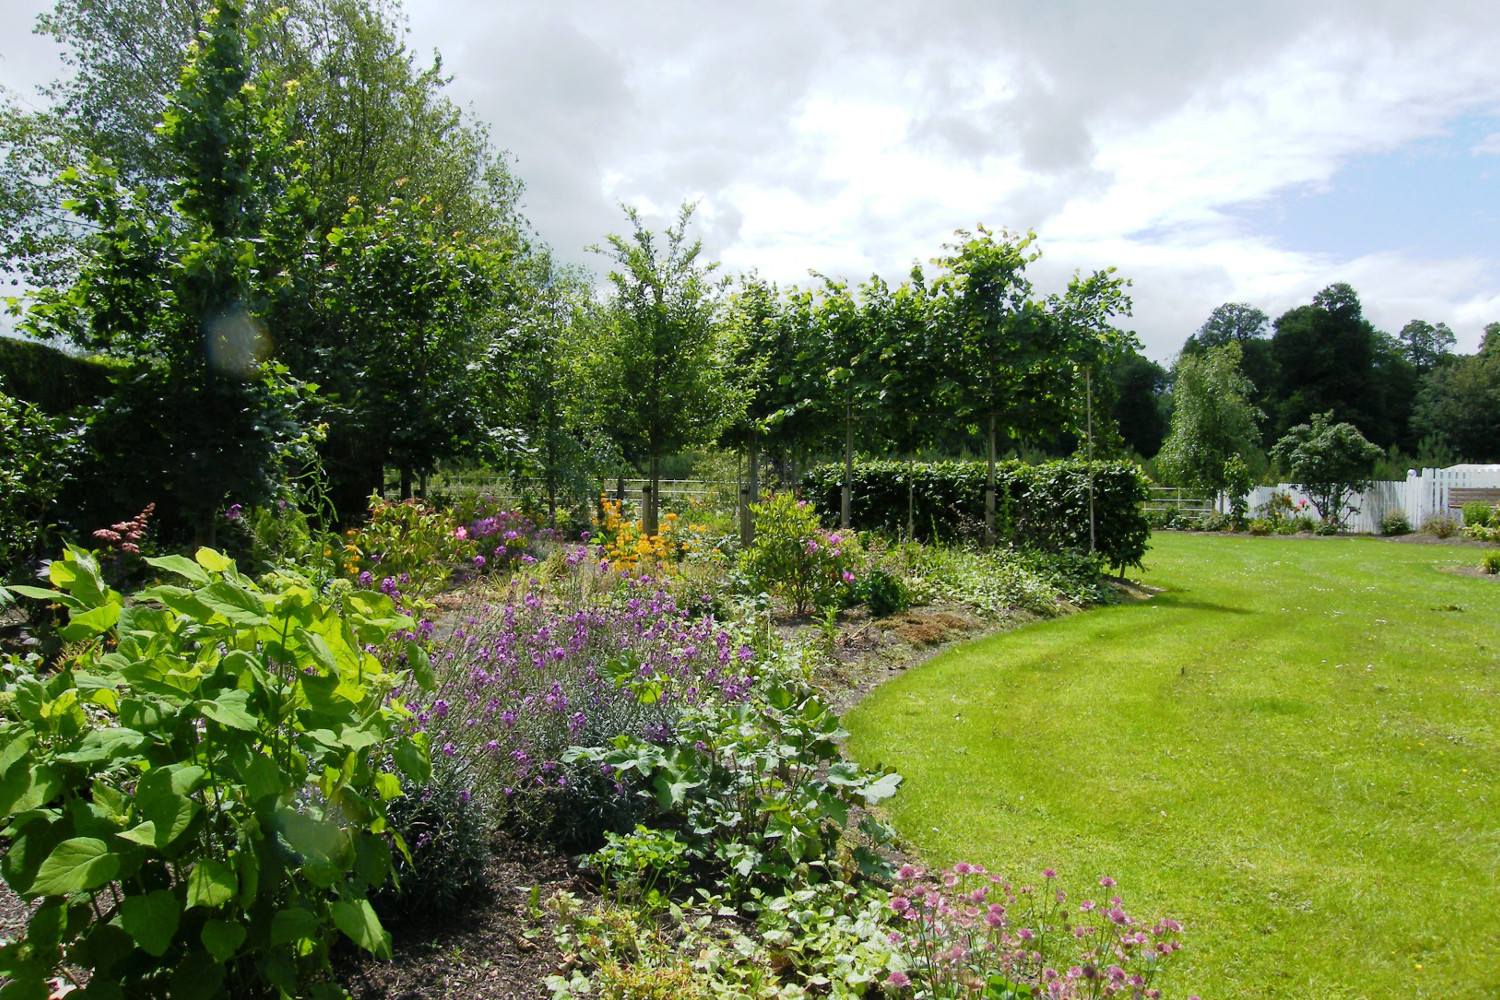 tim-austen-garden-design-rural-garden-cahir-tipperary-6